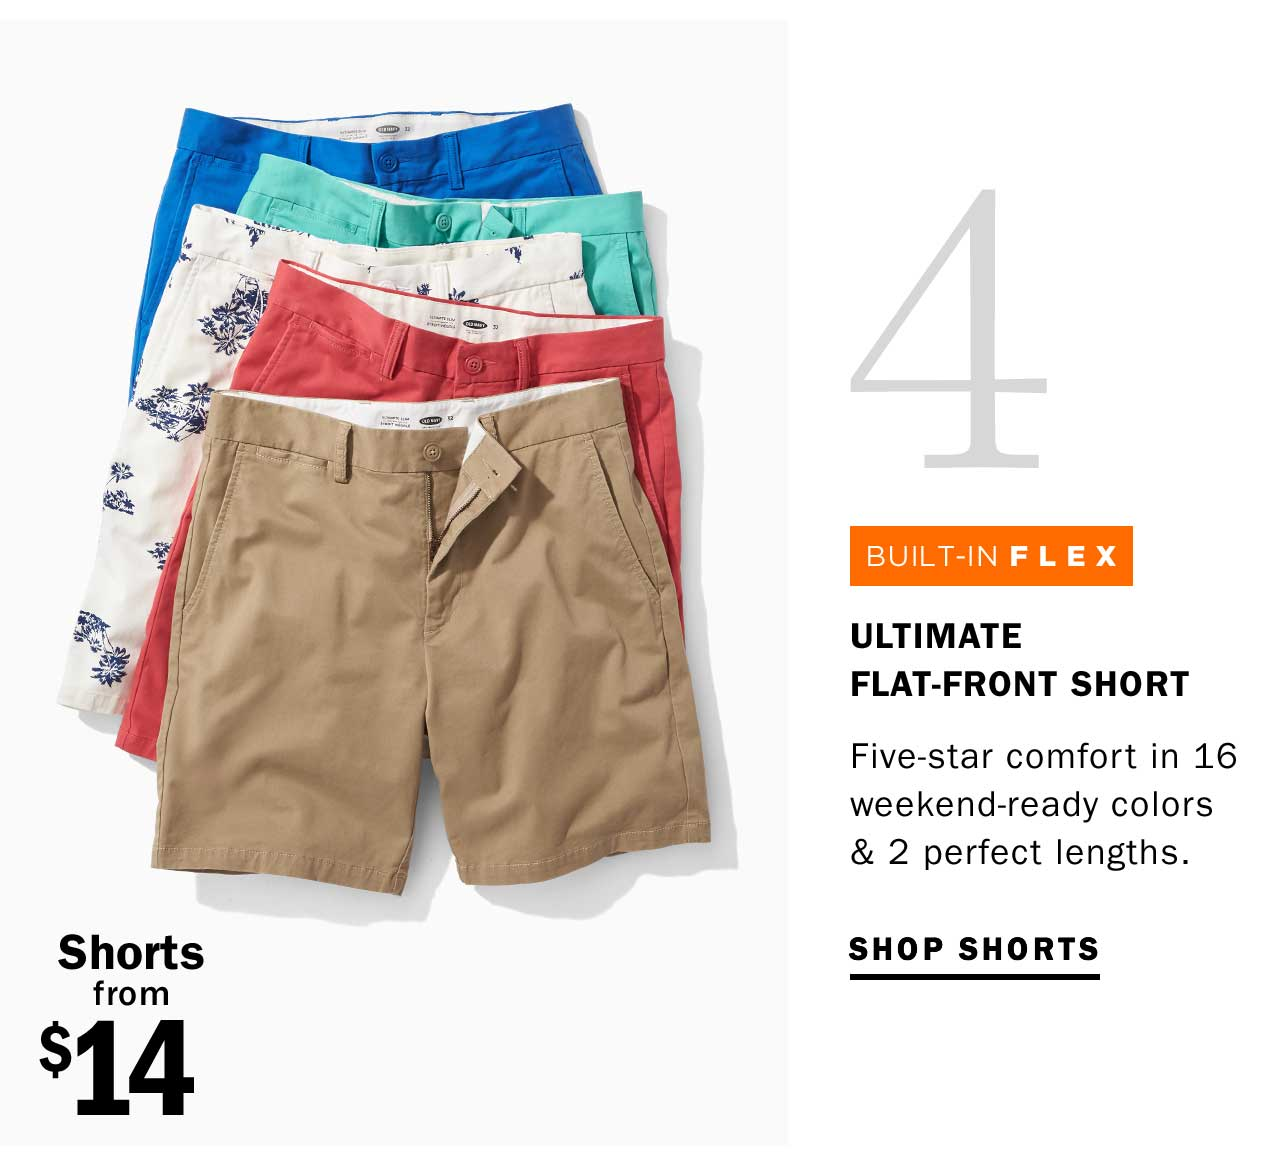 4 ULTIMATE FLAT-FRONT SHORT | SHOP SHORTS | Shorts from $14